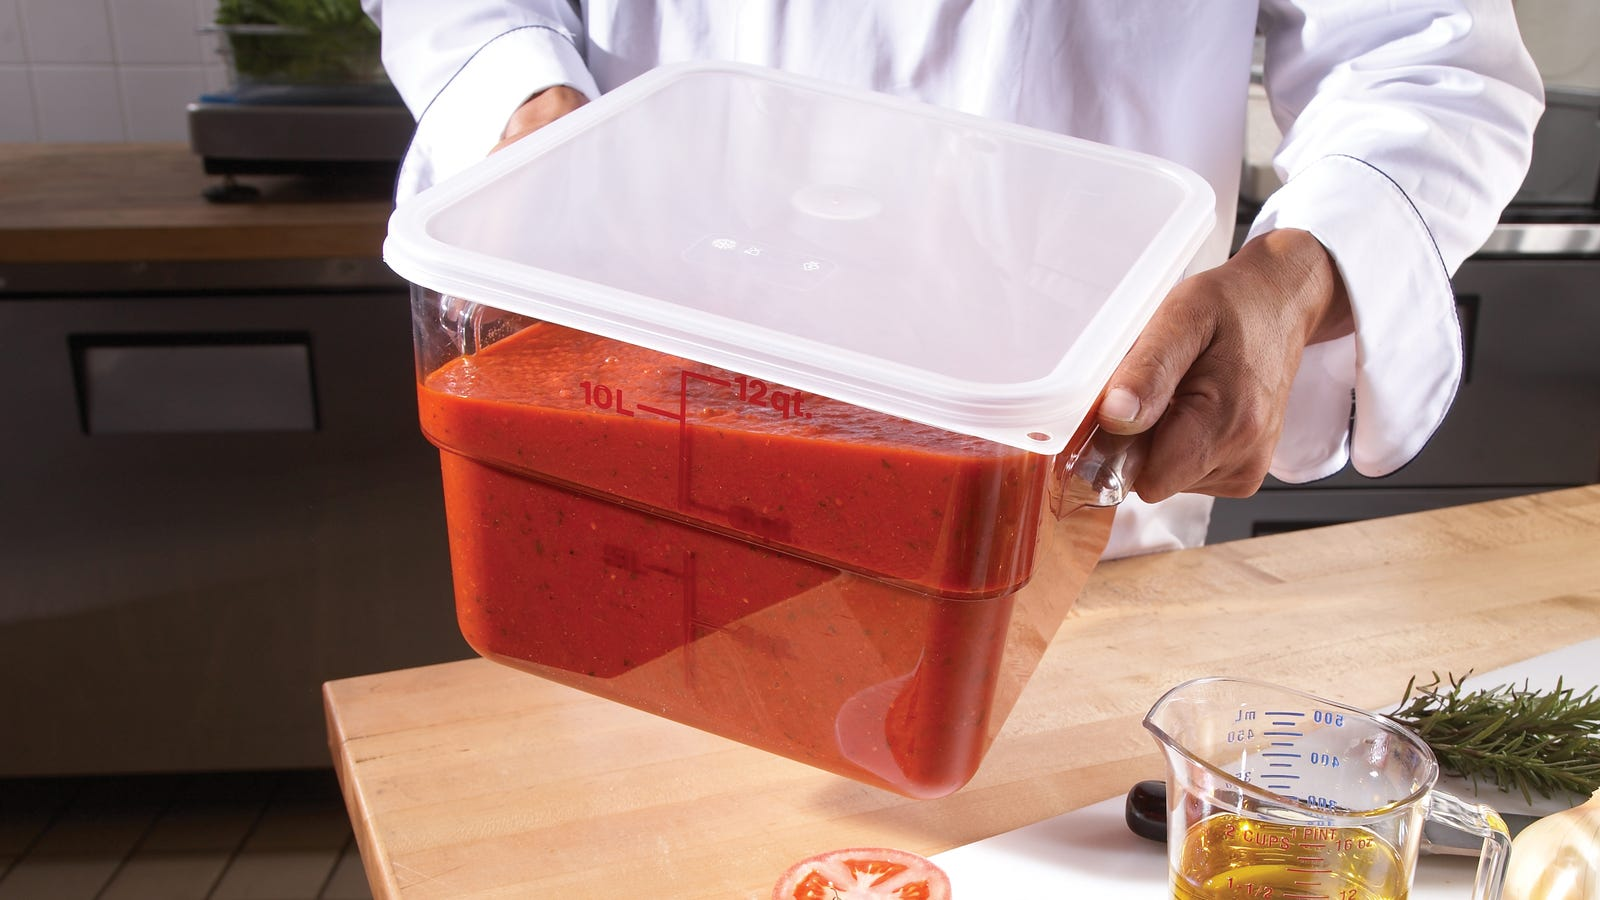 Everyone needs a giant plastic Cambro tub in their life